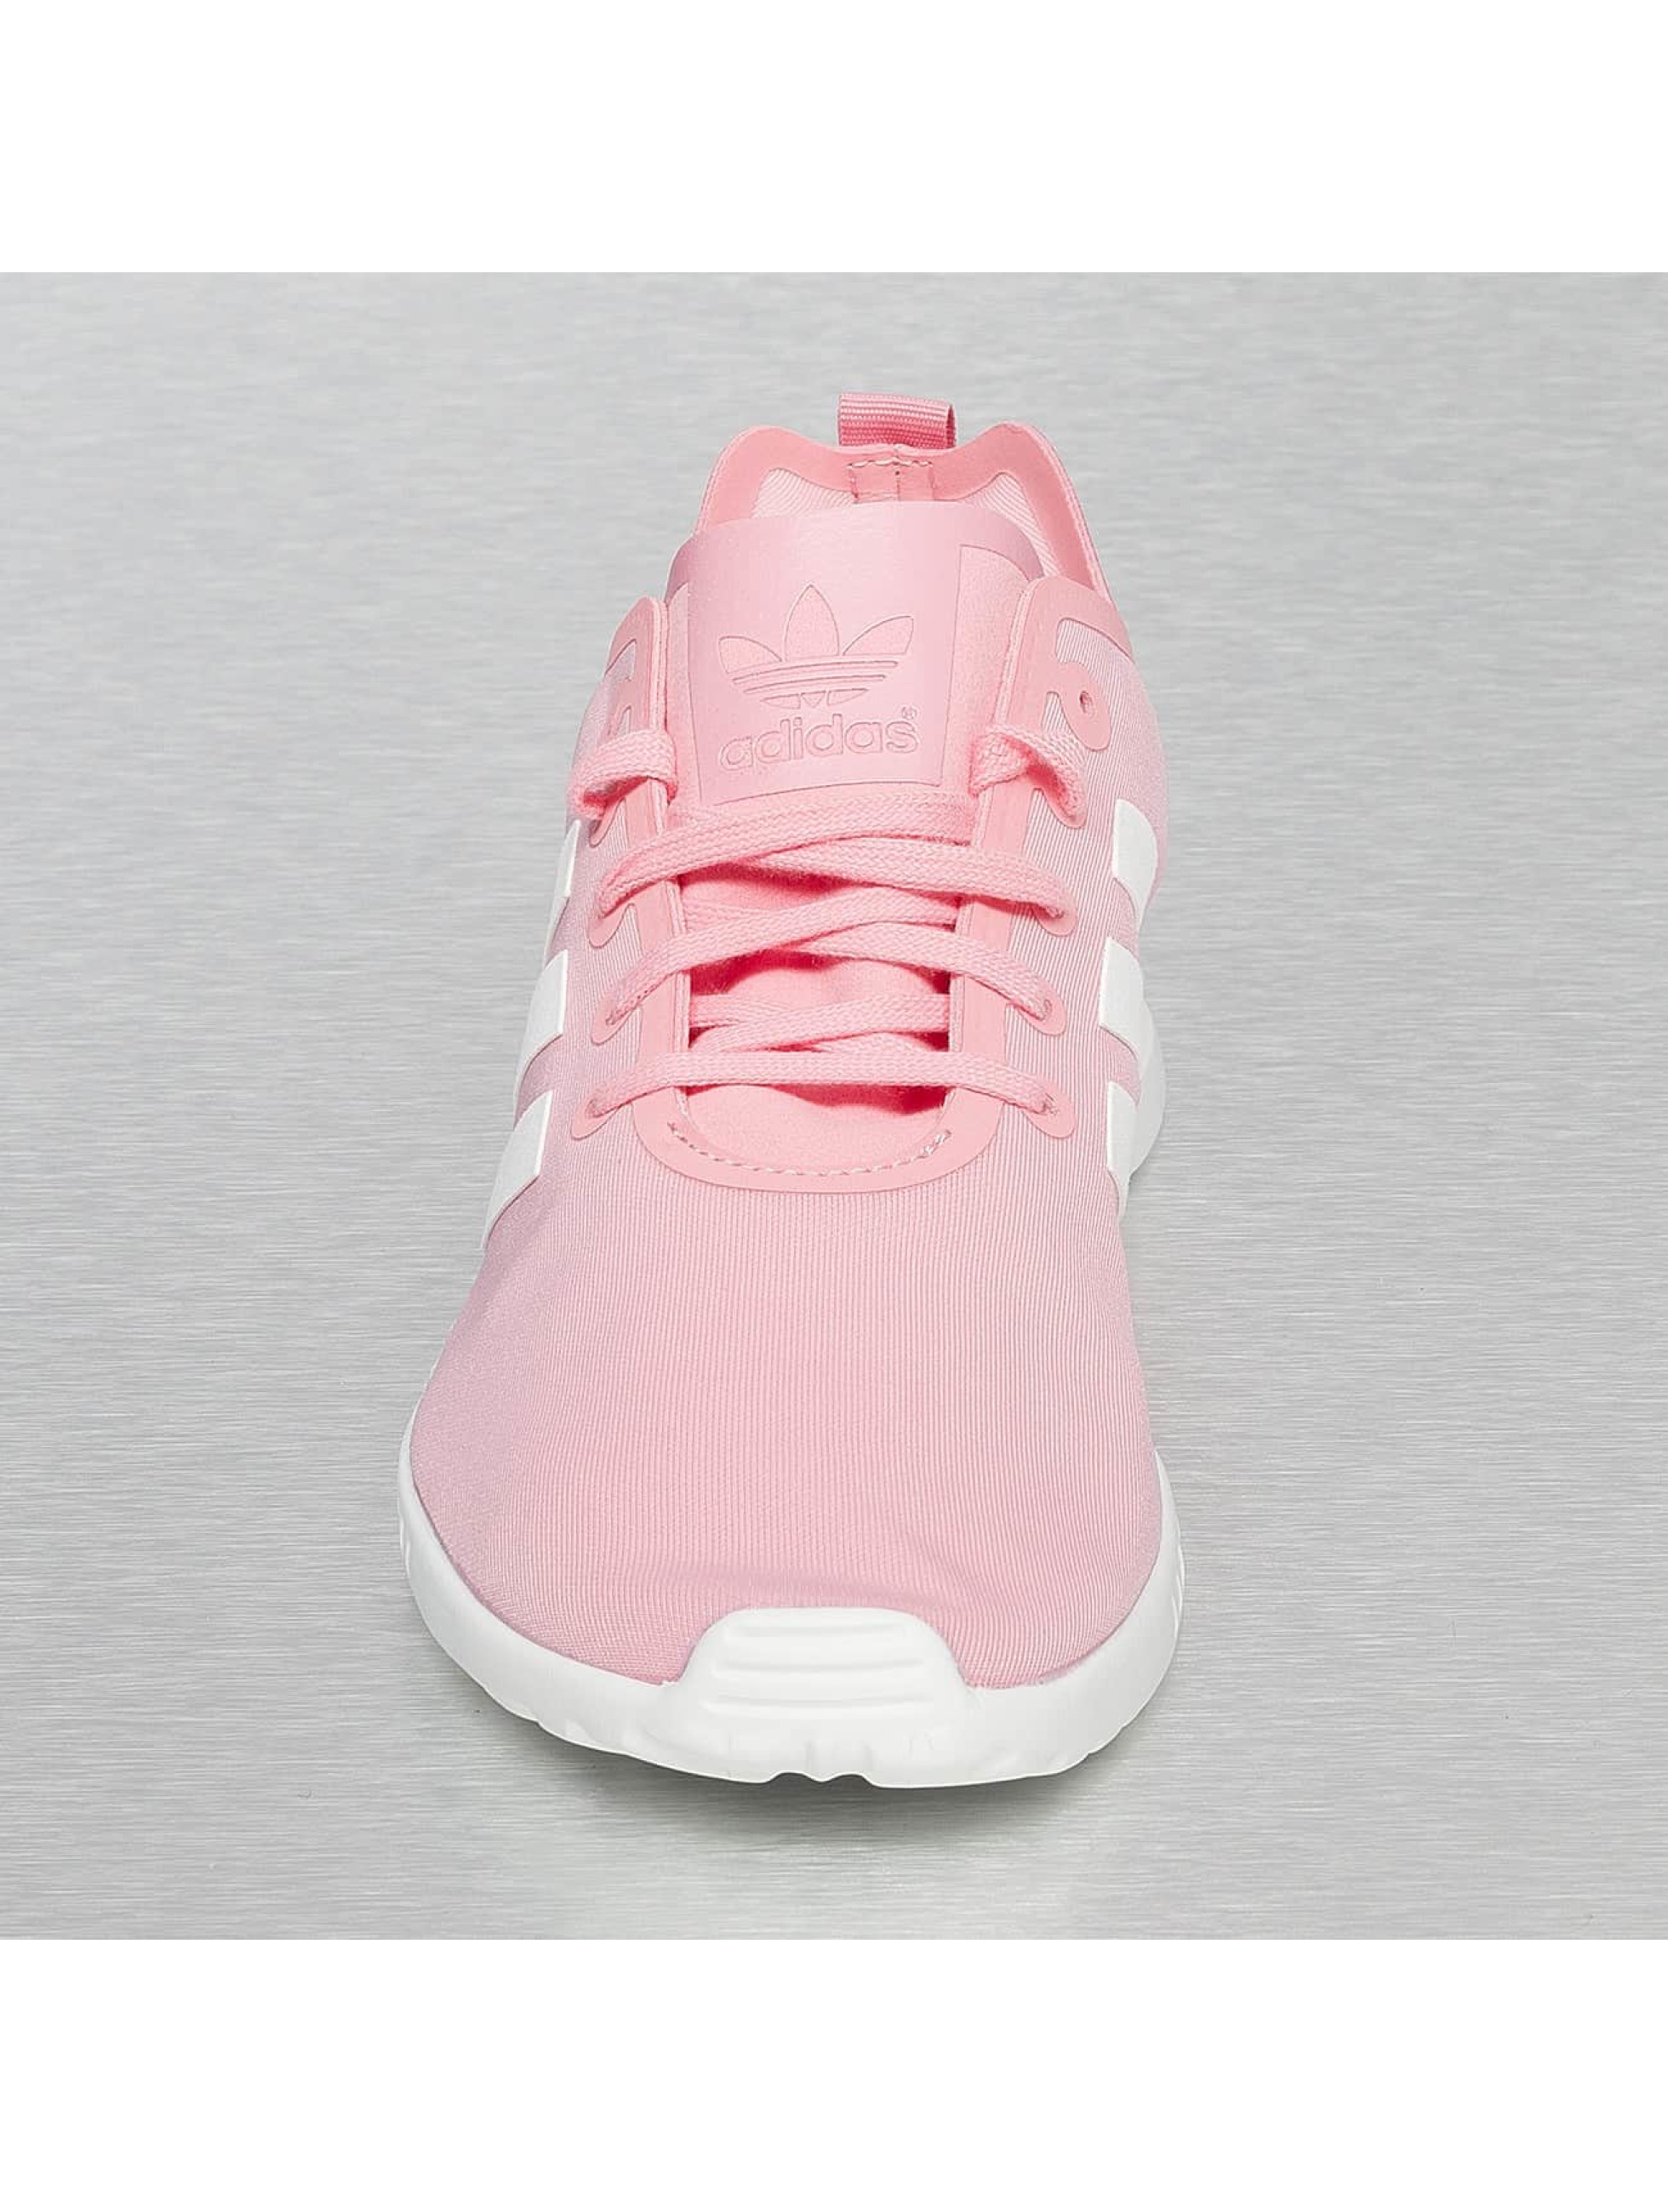 adidas zx flux in pink